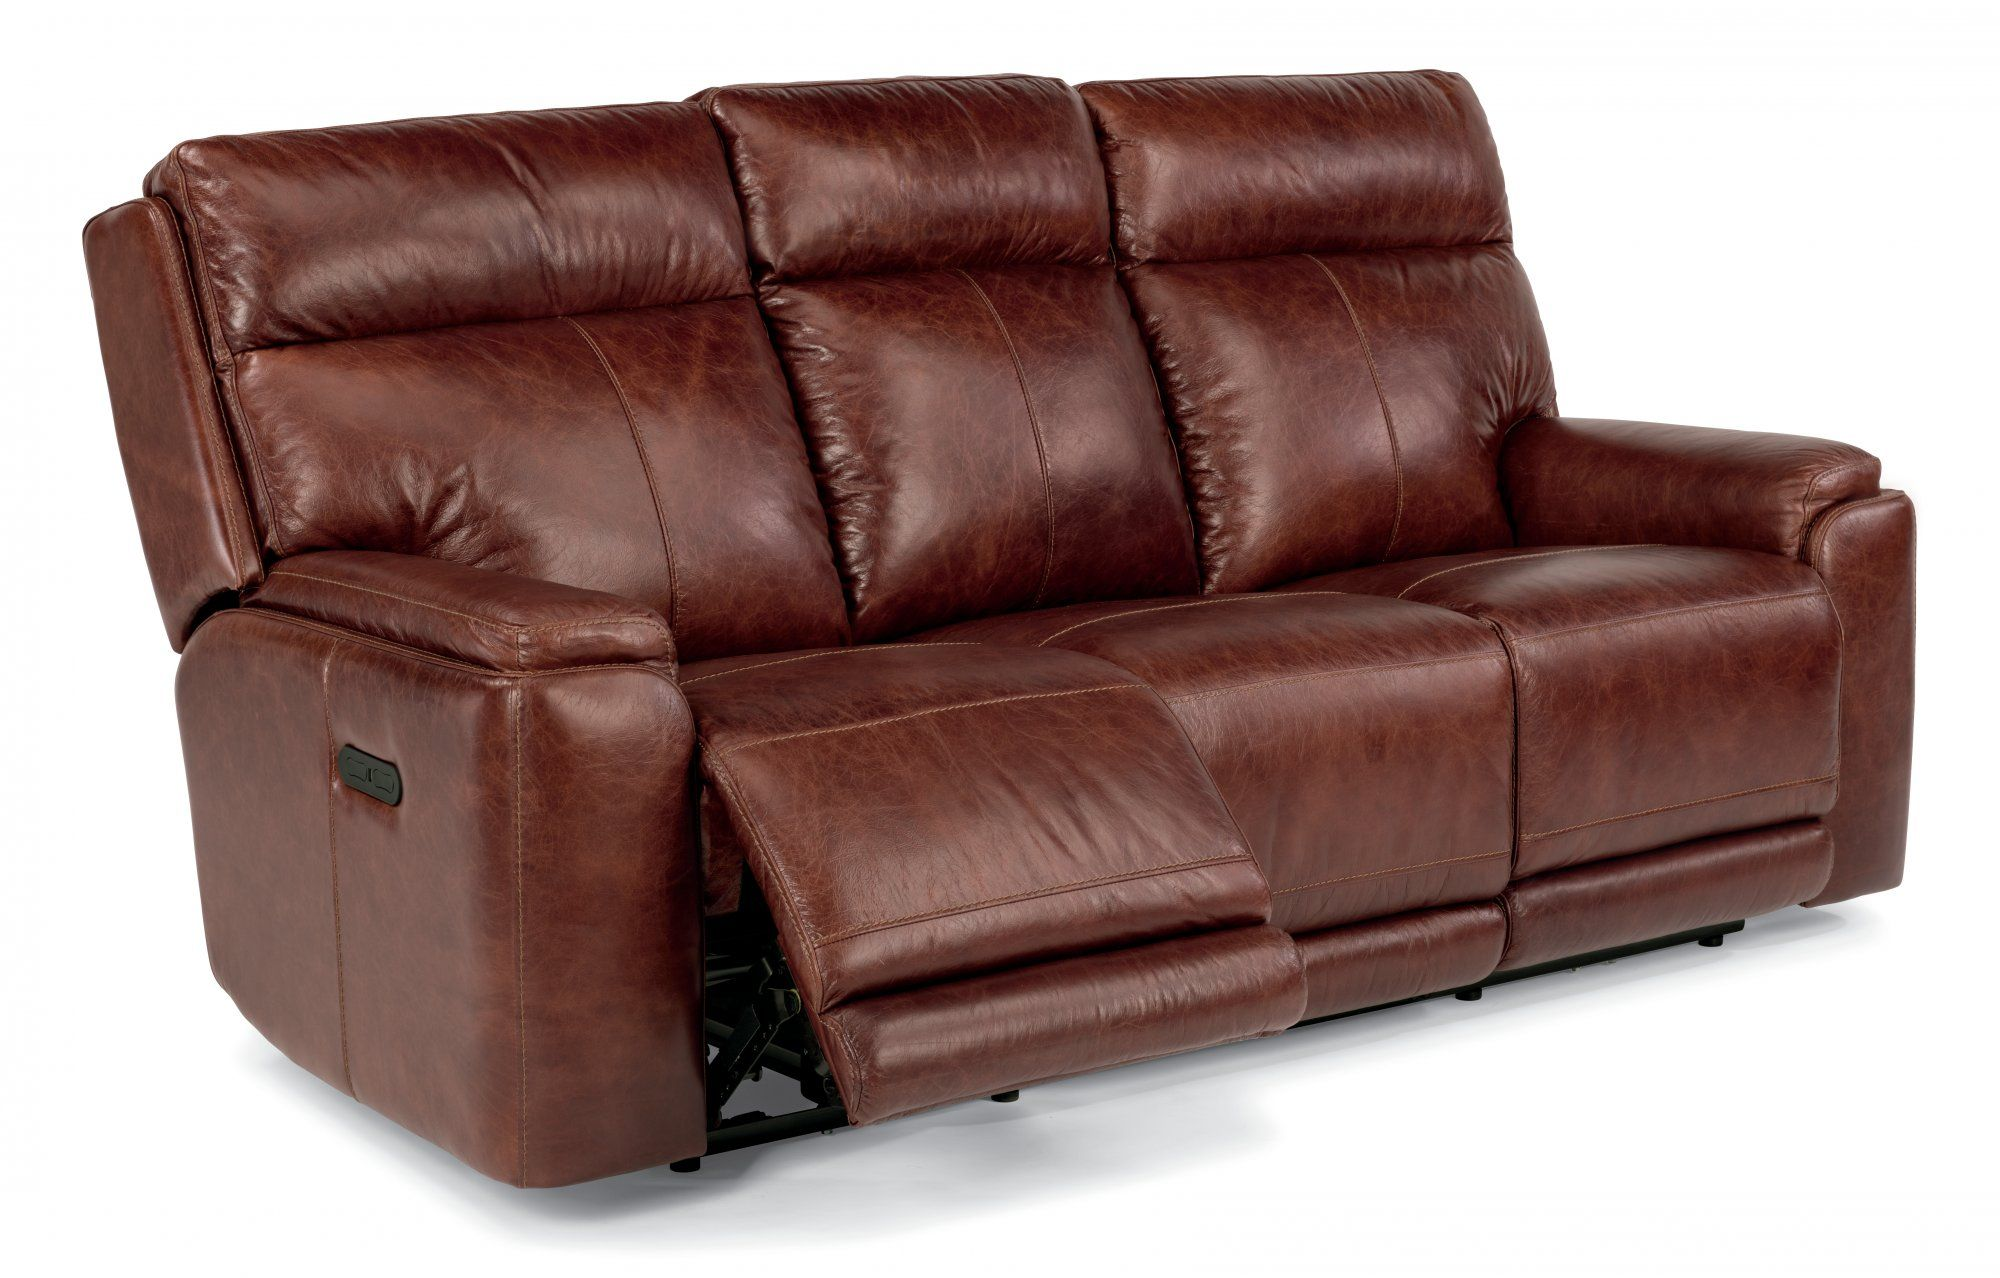 - Gorgeous Leather Sofa With Recliner Built In , Amazing Leather